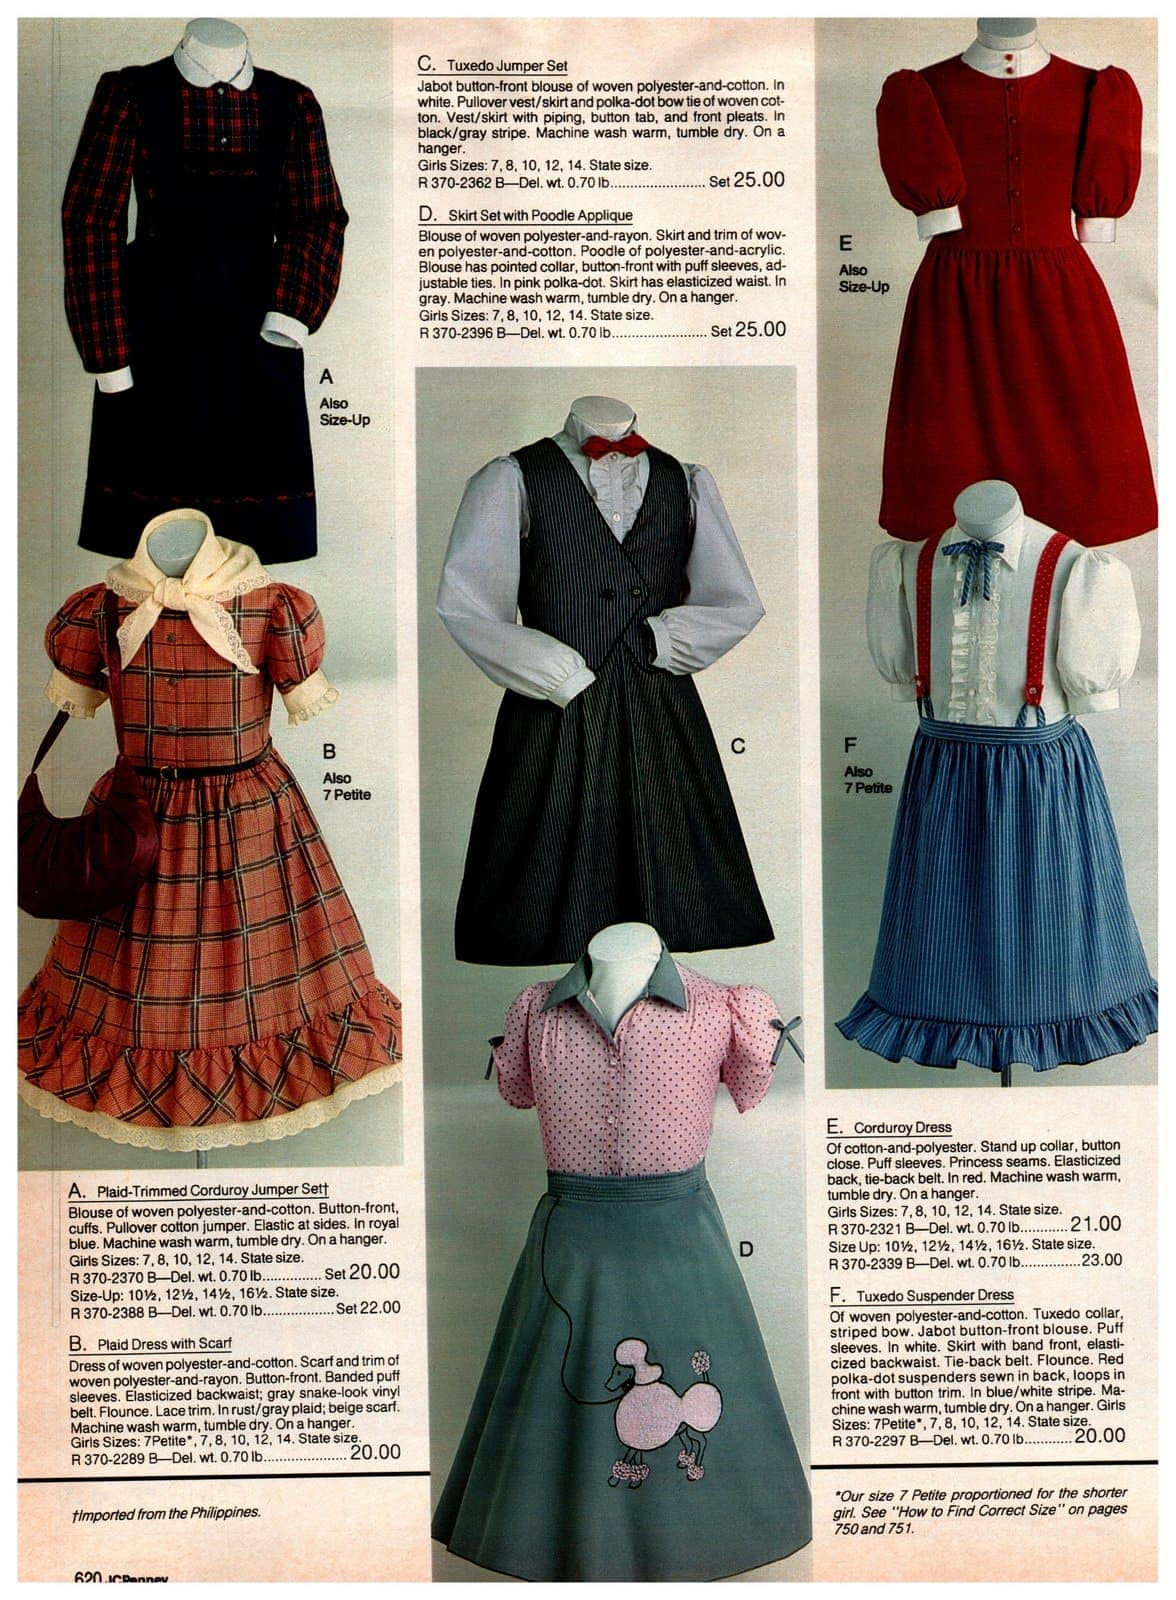 Old-fashioned '50-style outfit - plus prairie style dresses and skirts for girls